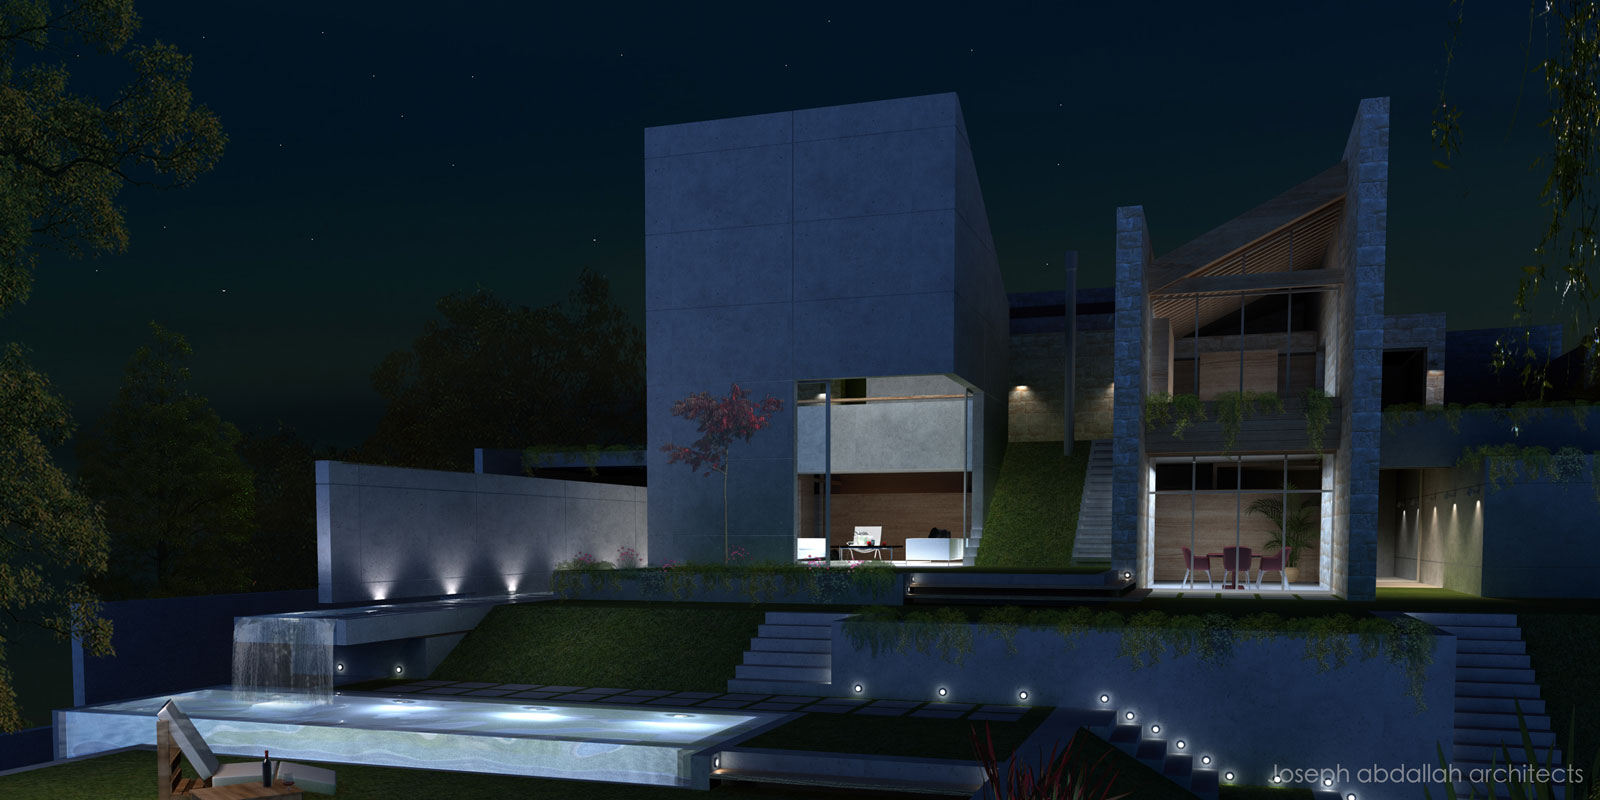 khoury-georges-villa-modern-archiecture-river-pool-joseph-abdallah-architects-2